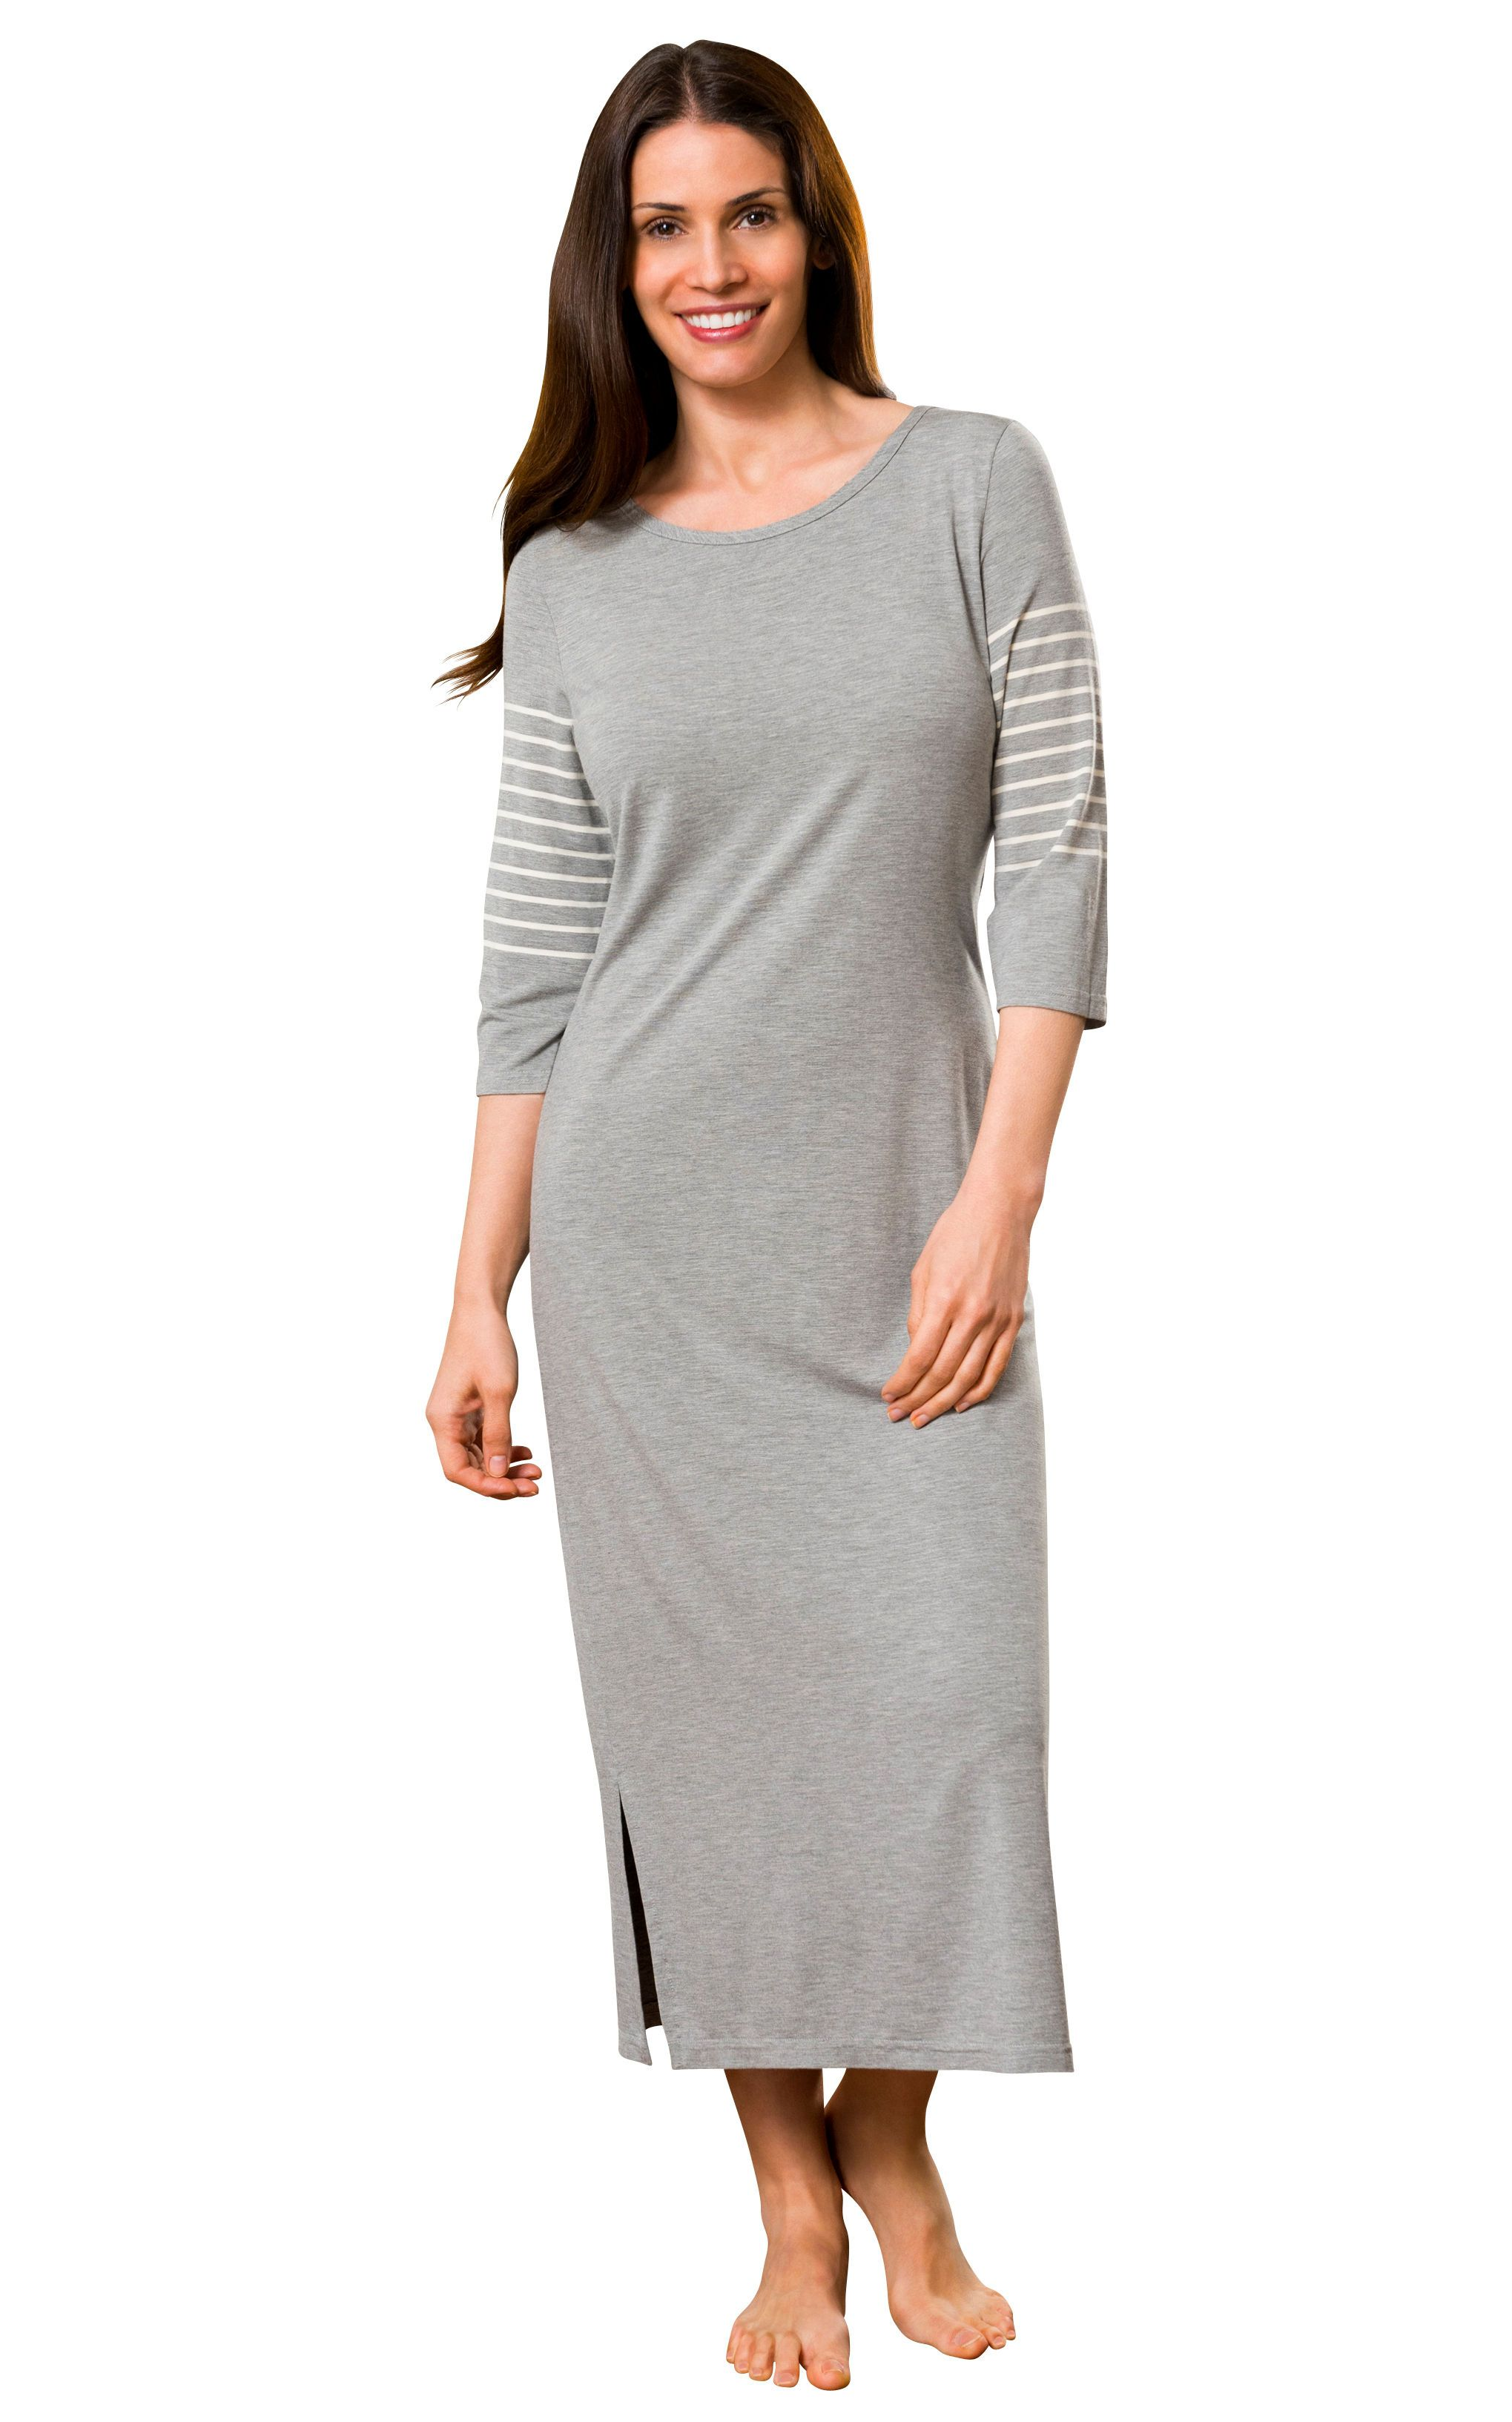 9dce229ac68c1 Shadowline Women s Long Nightgown Before Bed Modal Lounge Dress ...